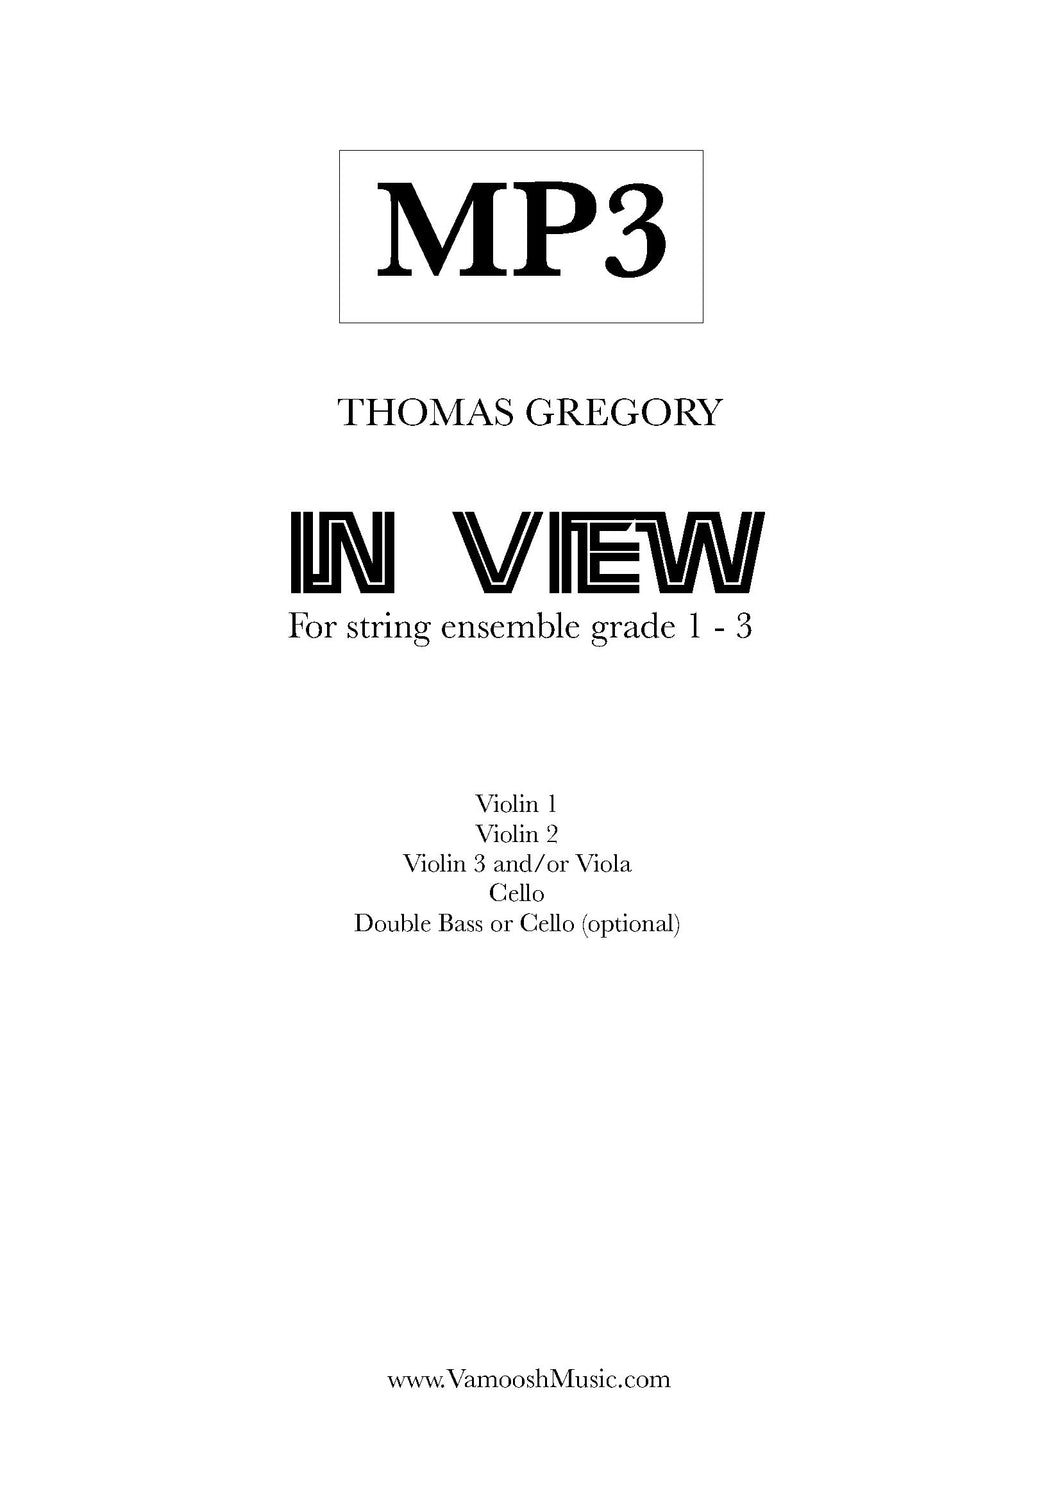 In View (MP3) by Thomas Gregory